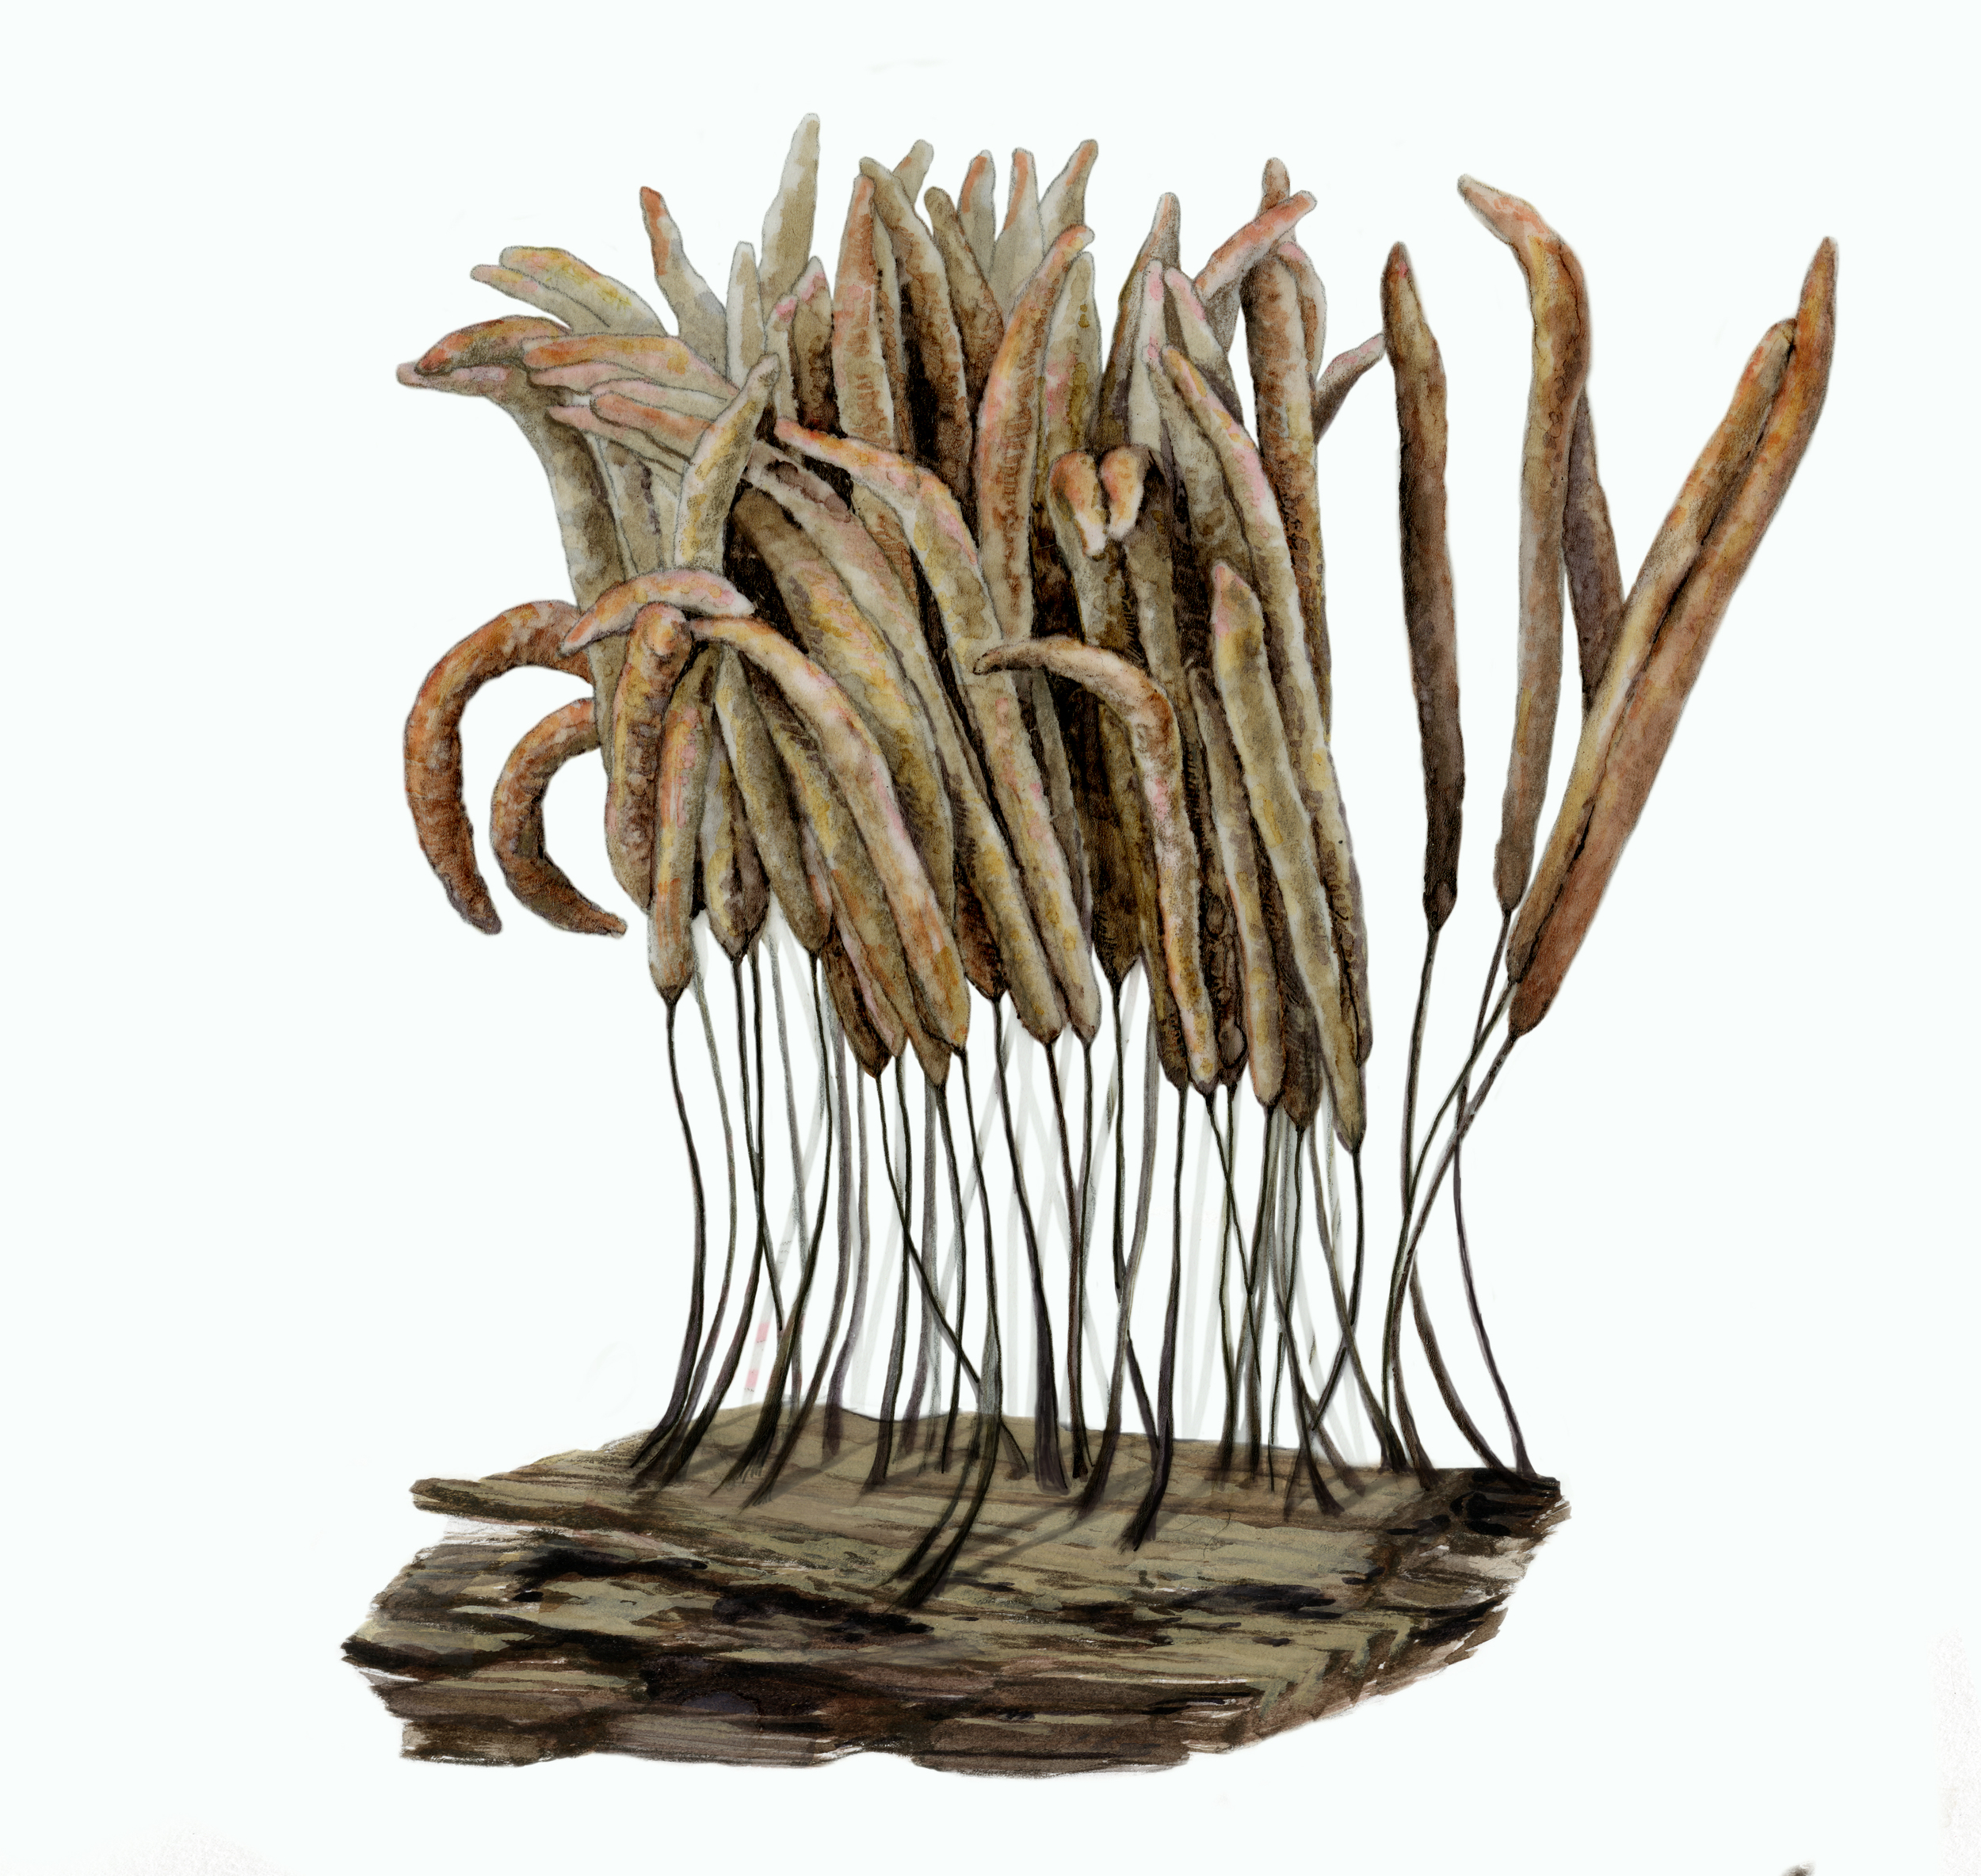 Stemonitis axifera  takes 20 hours to form these fruiting bodies. Then, slugs eat them, top down.